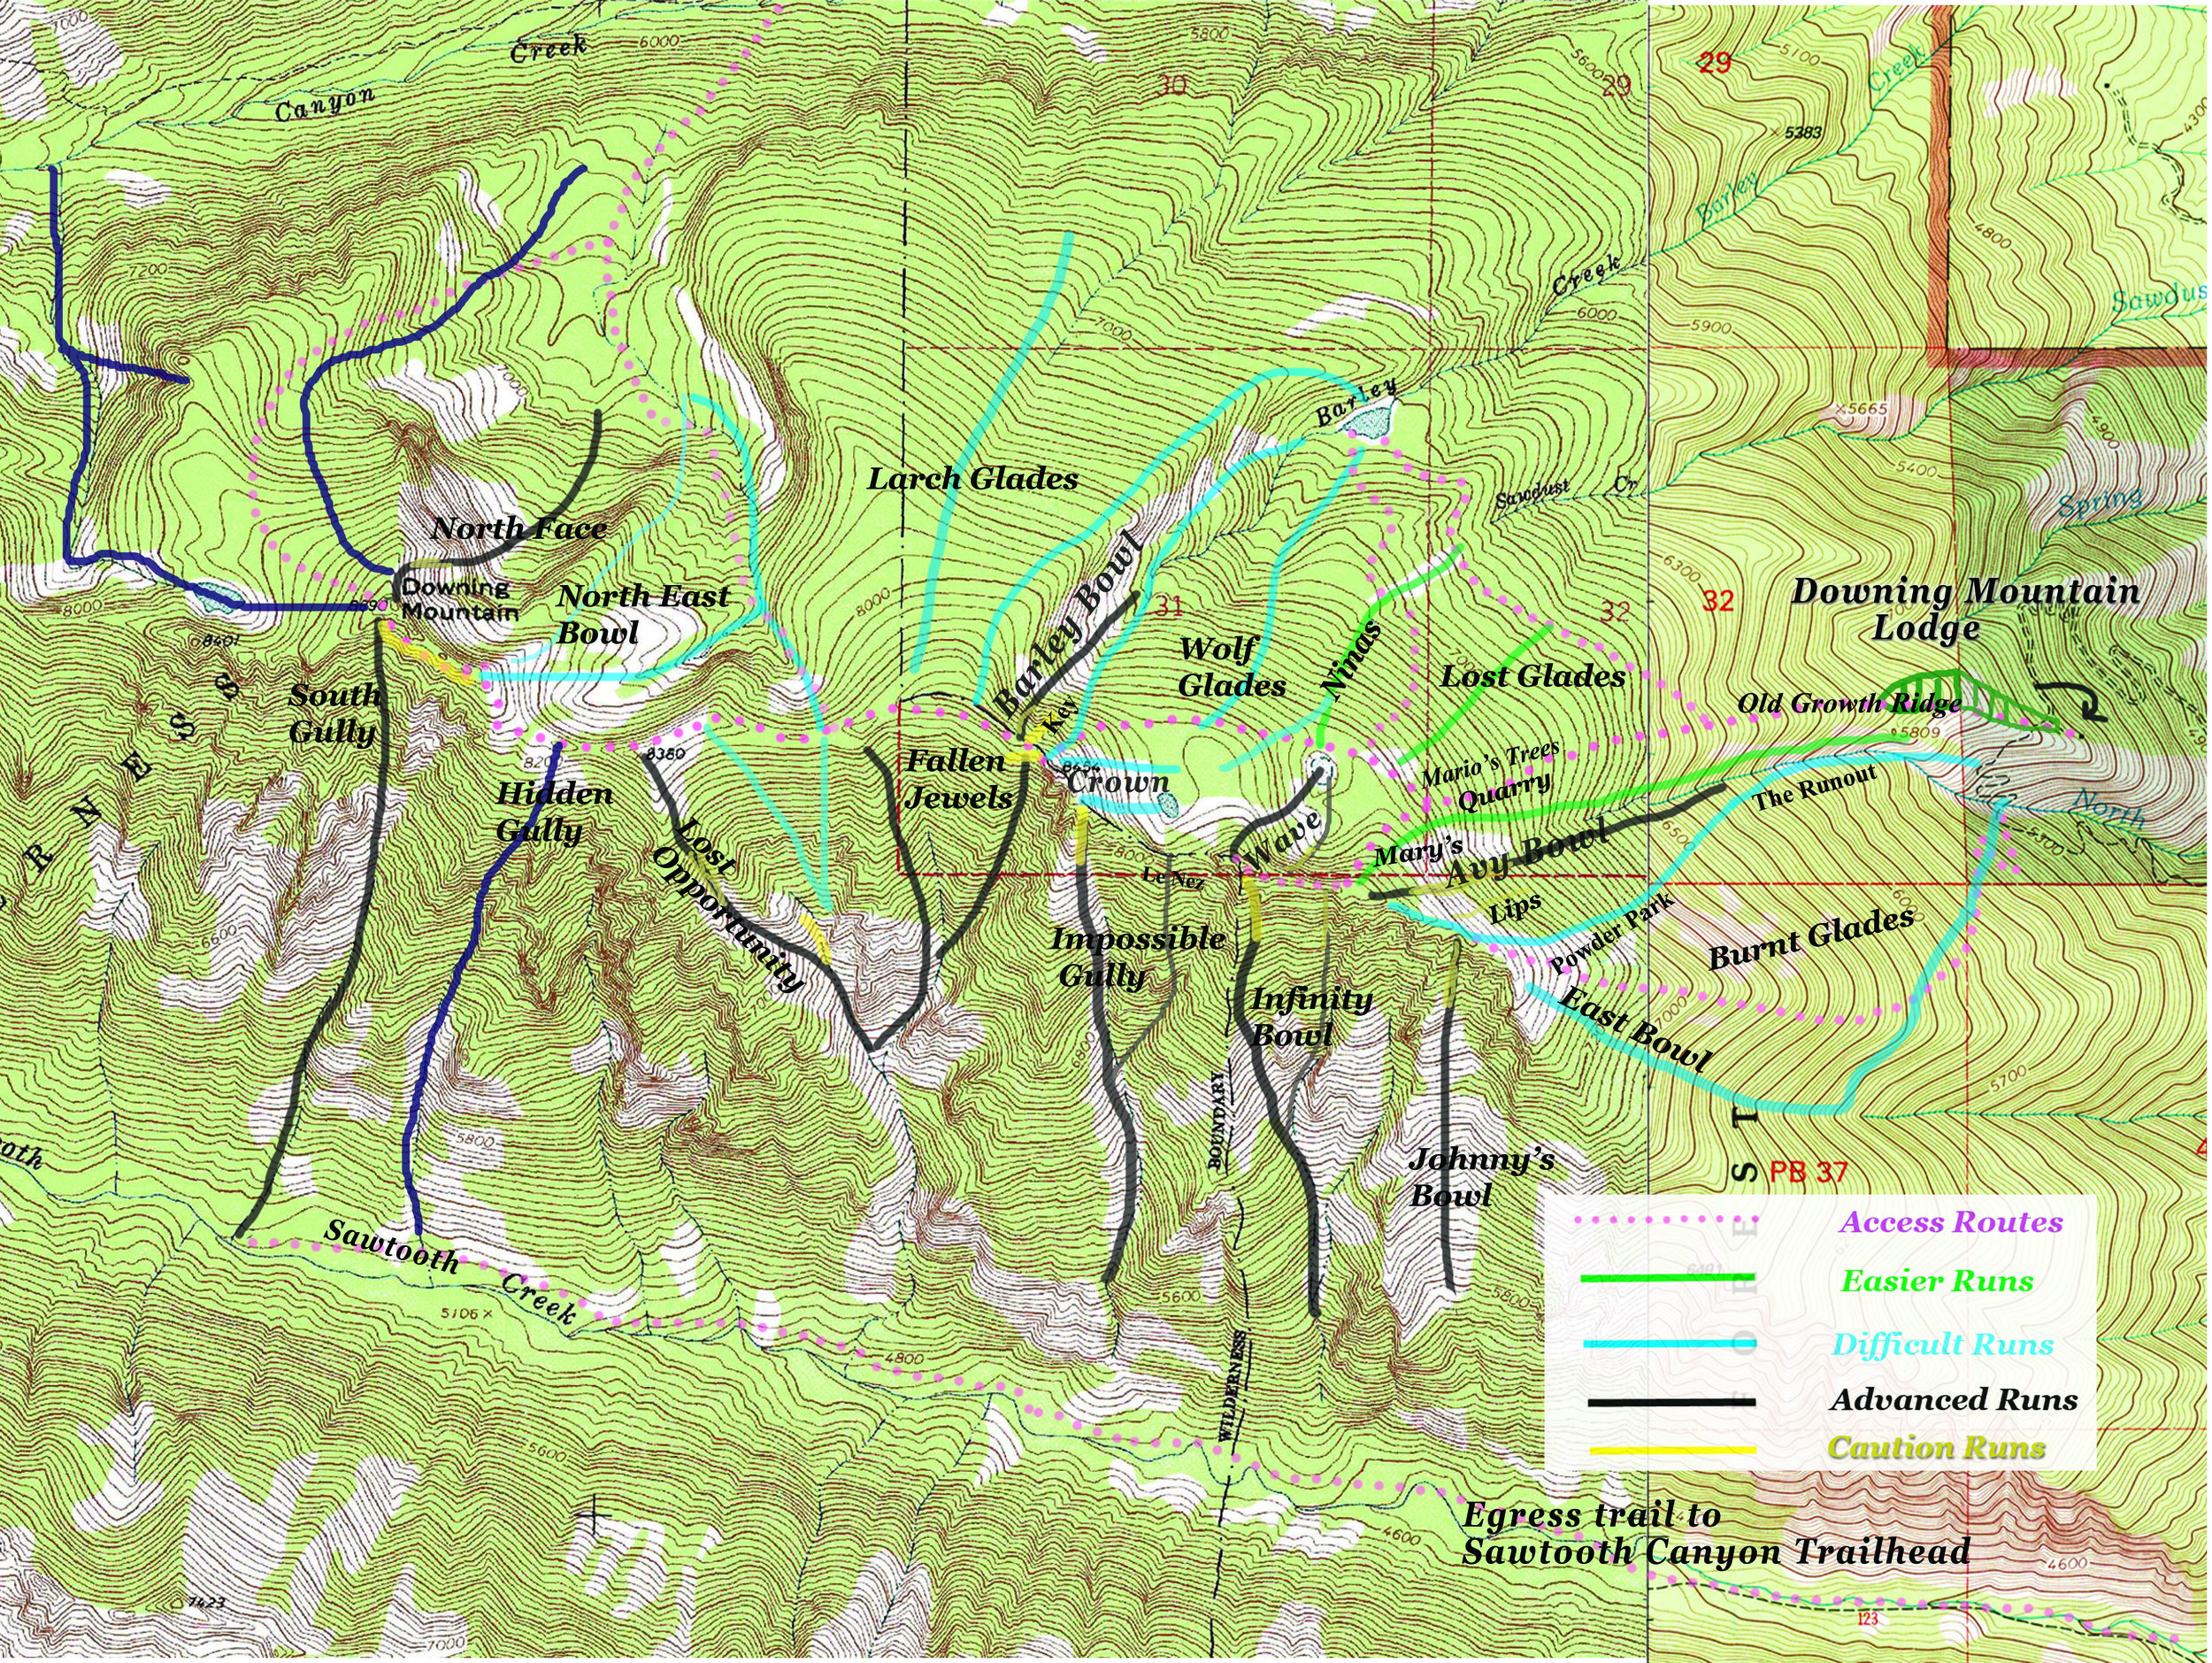 Downing Mountain Ski Map- labeled detail approximate, use with caution and respect!